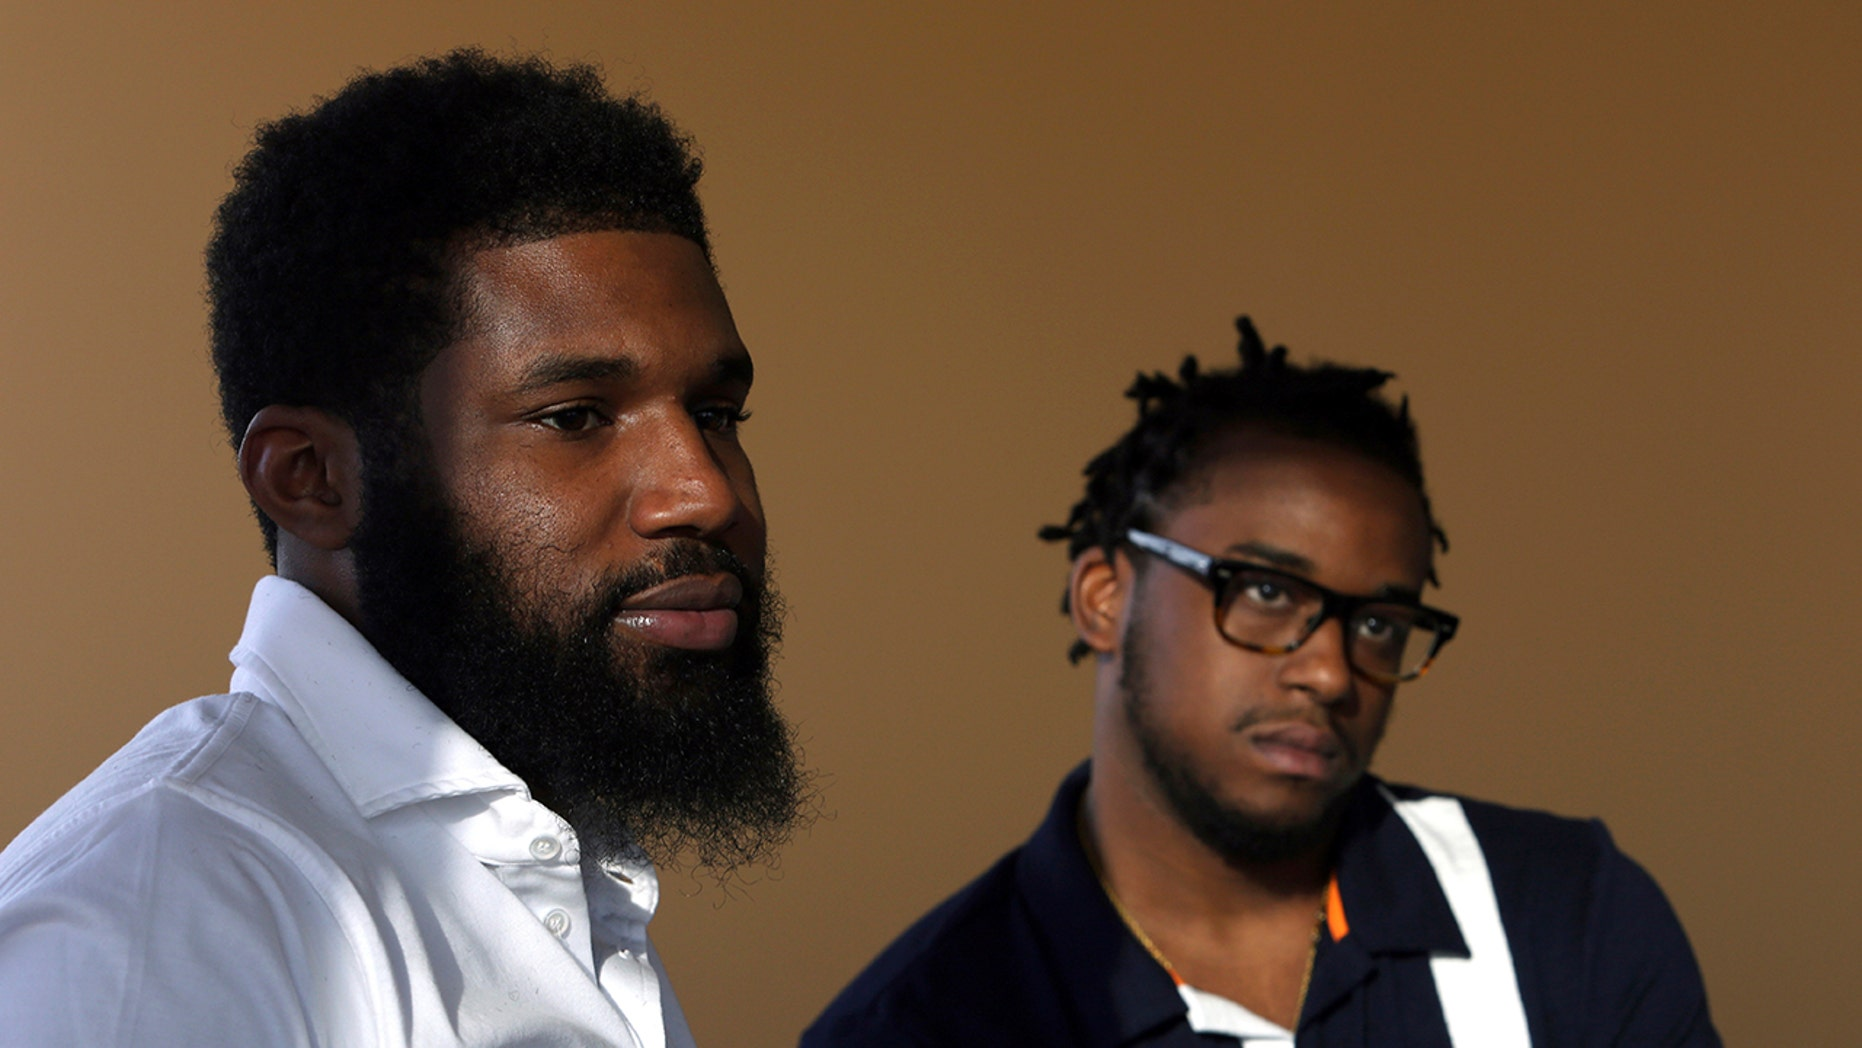 Rashon Nelson and Donte Robinson have met with the CEO of Starbucks and are pushing for meaningful change.